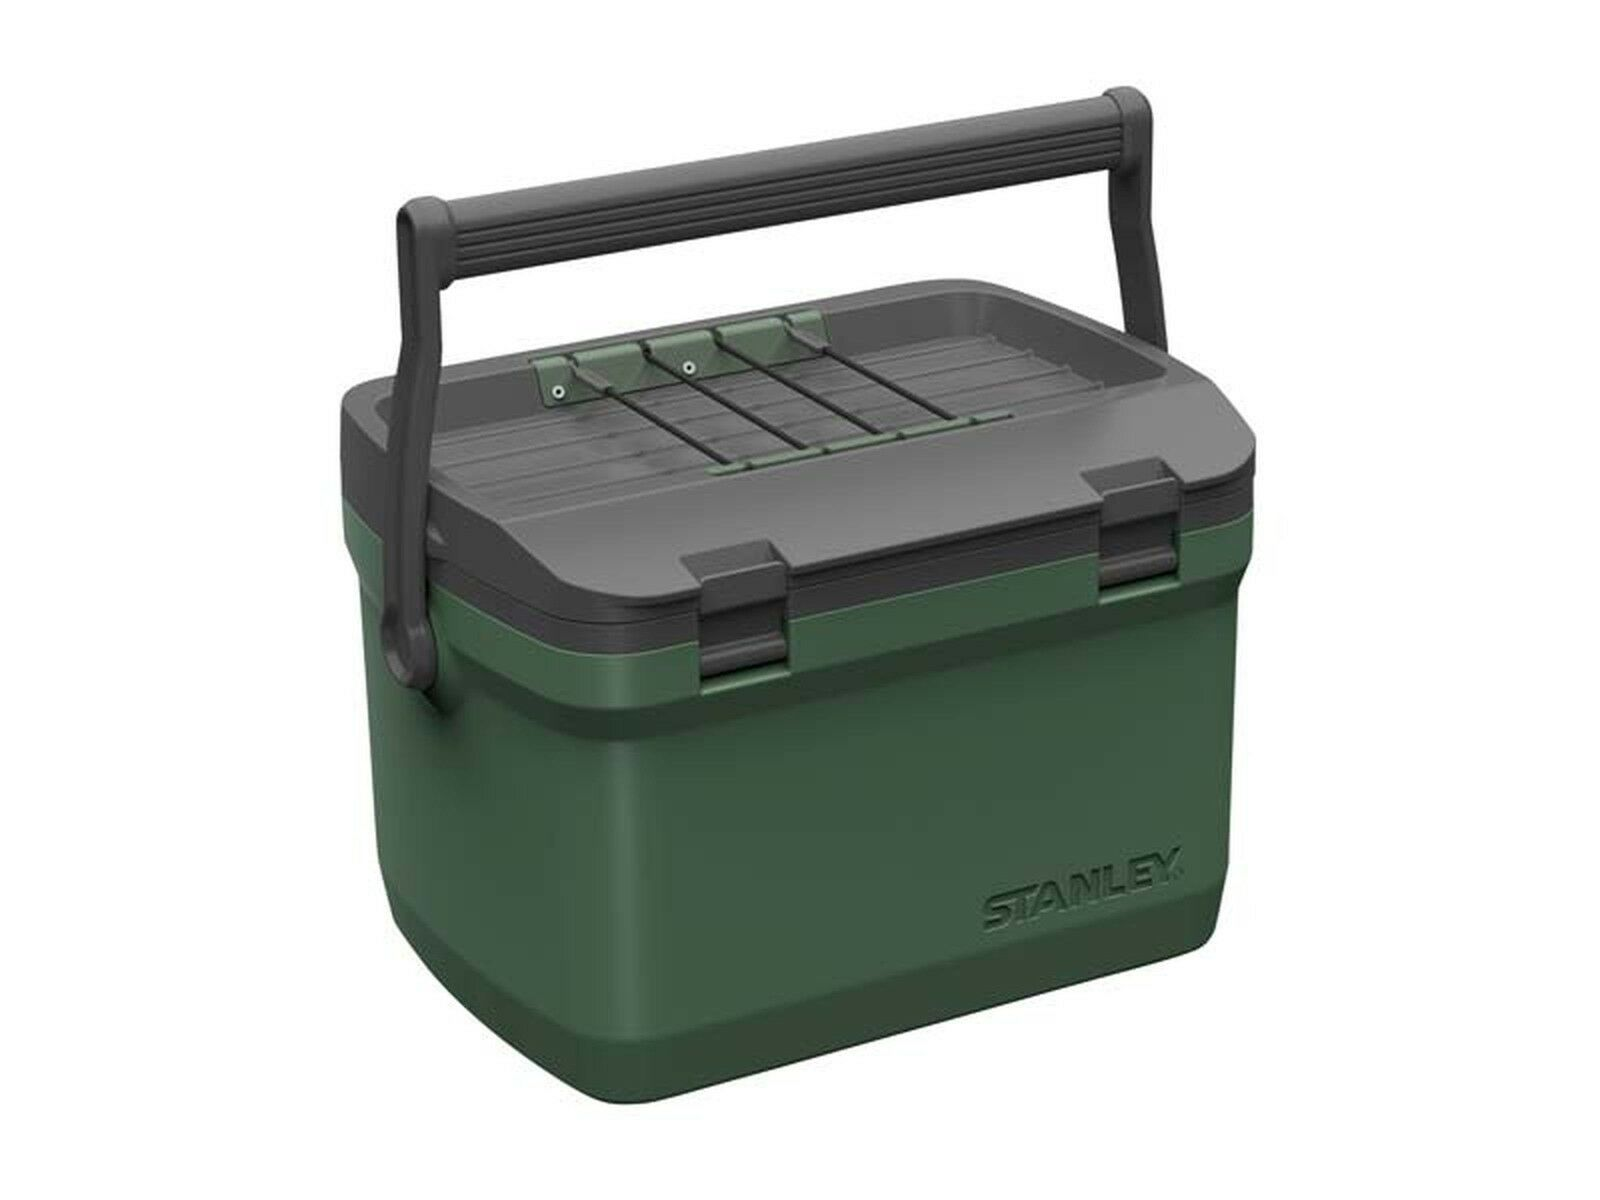 Stanley Adventure Cooler, 15.1 Liters Capacity Green